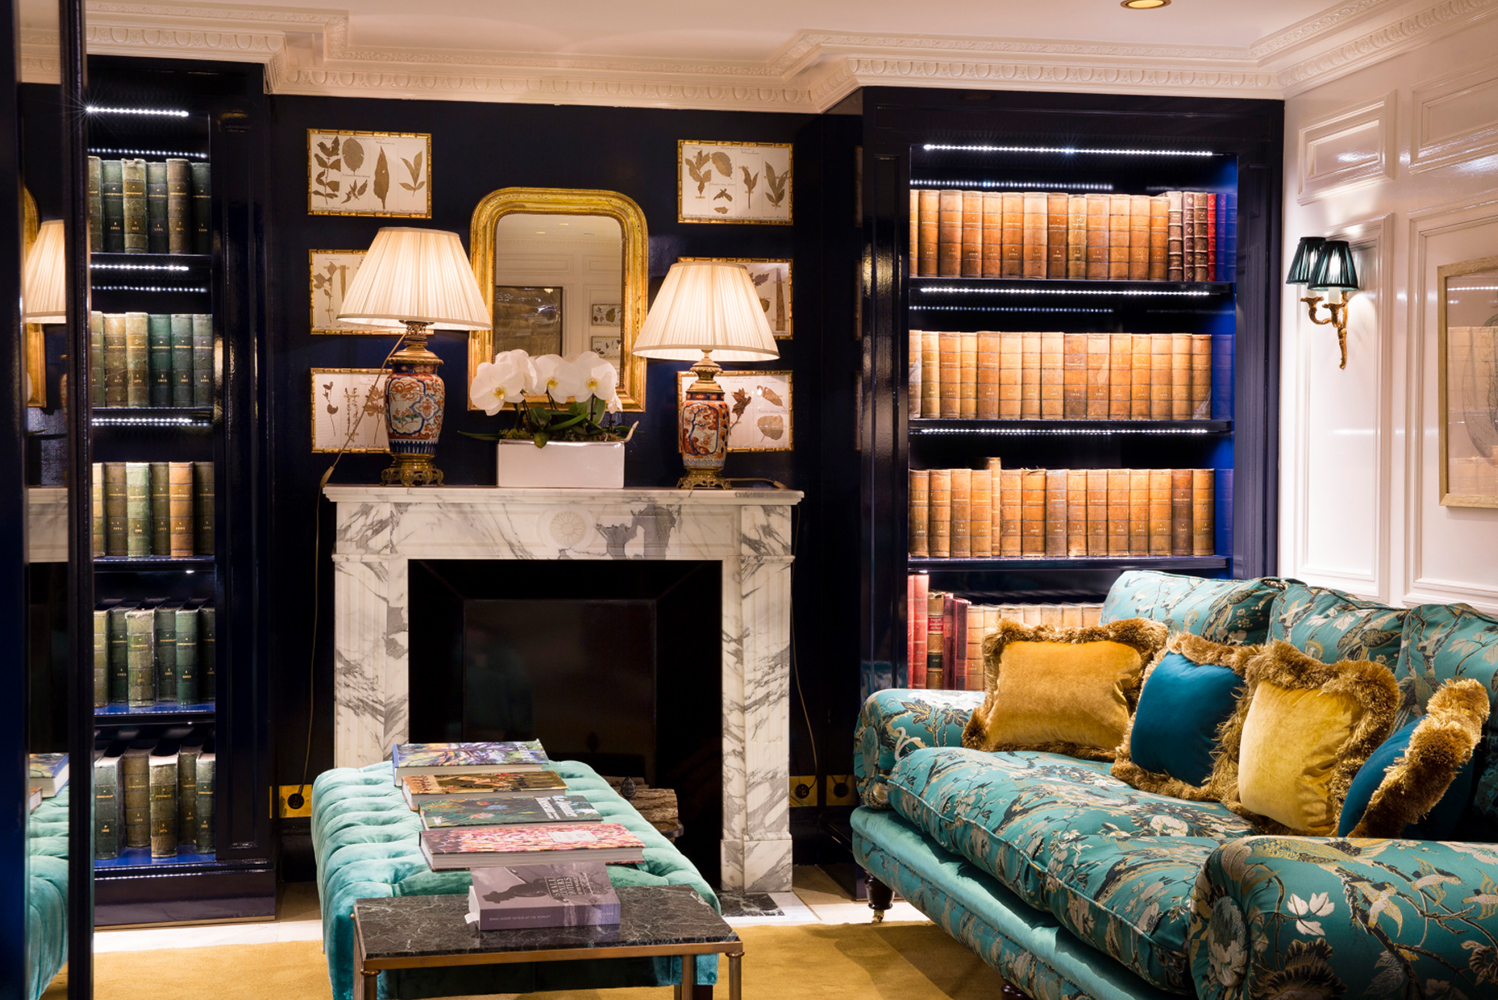 The ground floor loungeshave large armchairs and sofas, paintings and drawings, bookcases and trims, as well as mantled fireplaces and tables.